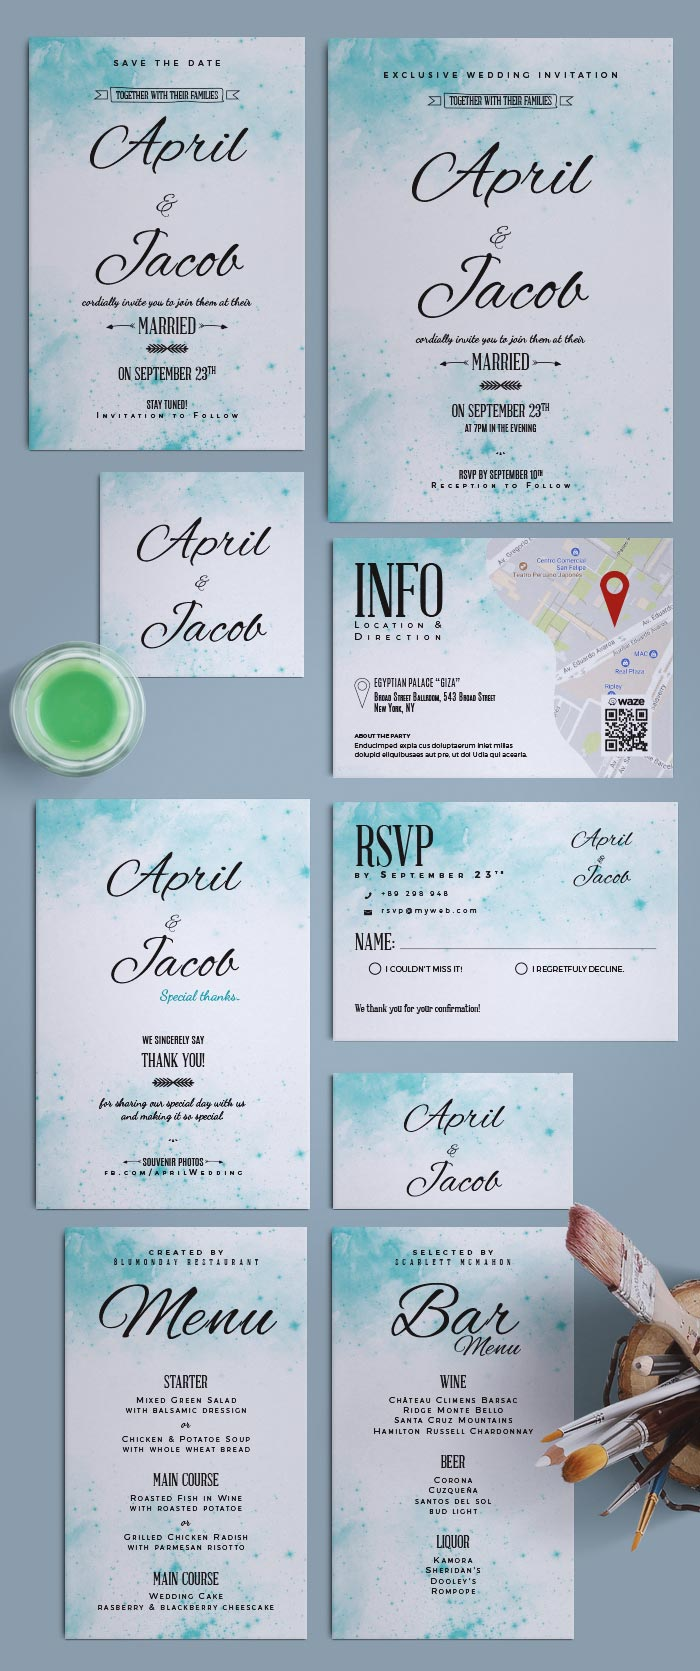 Watercolor Wedding Suite | Invitation InDesign Template for Wedding